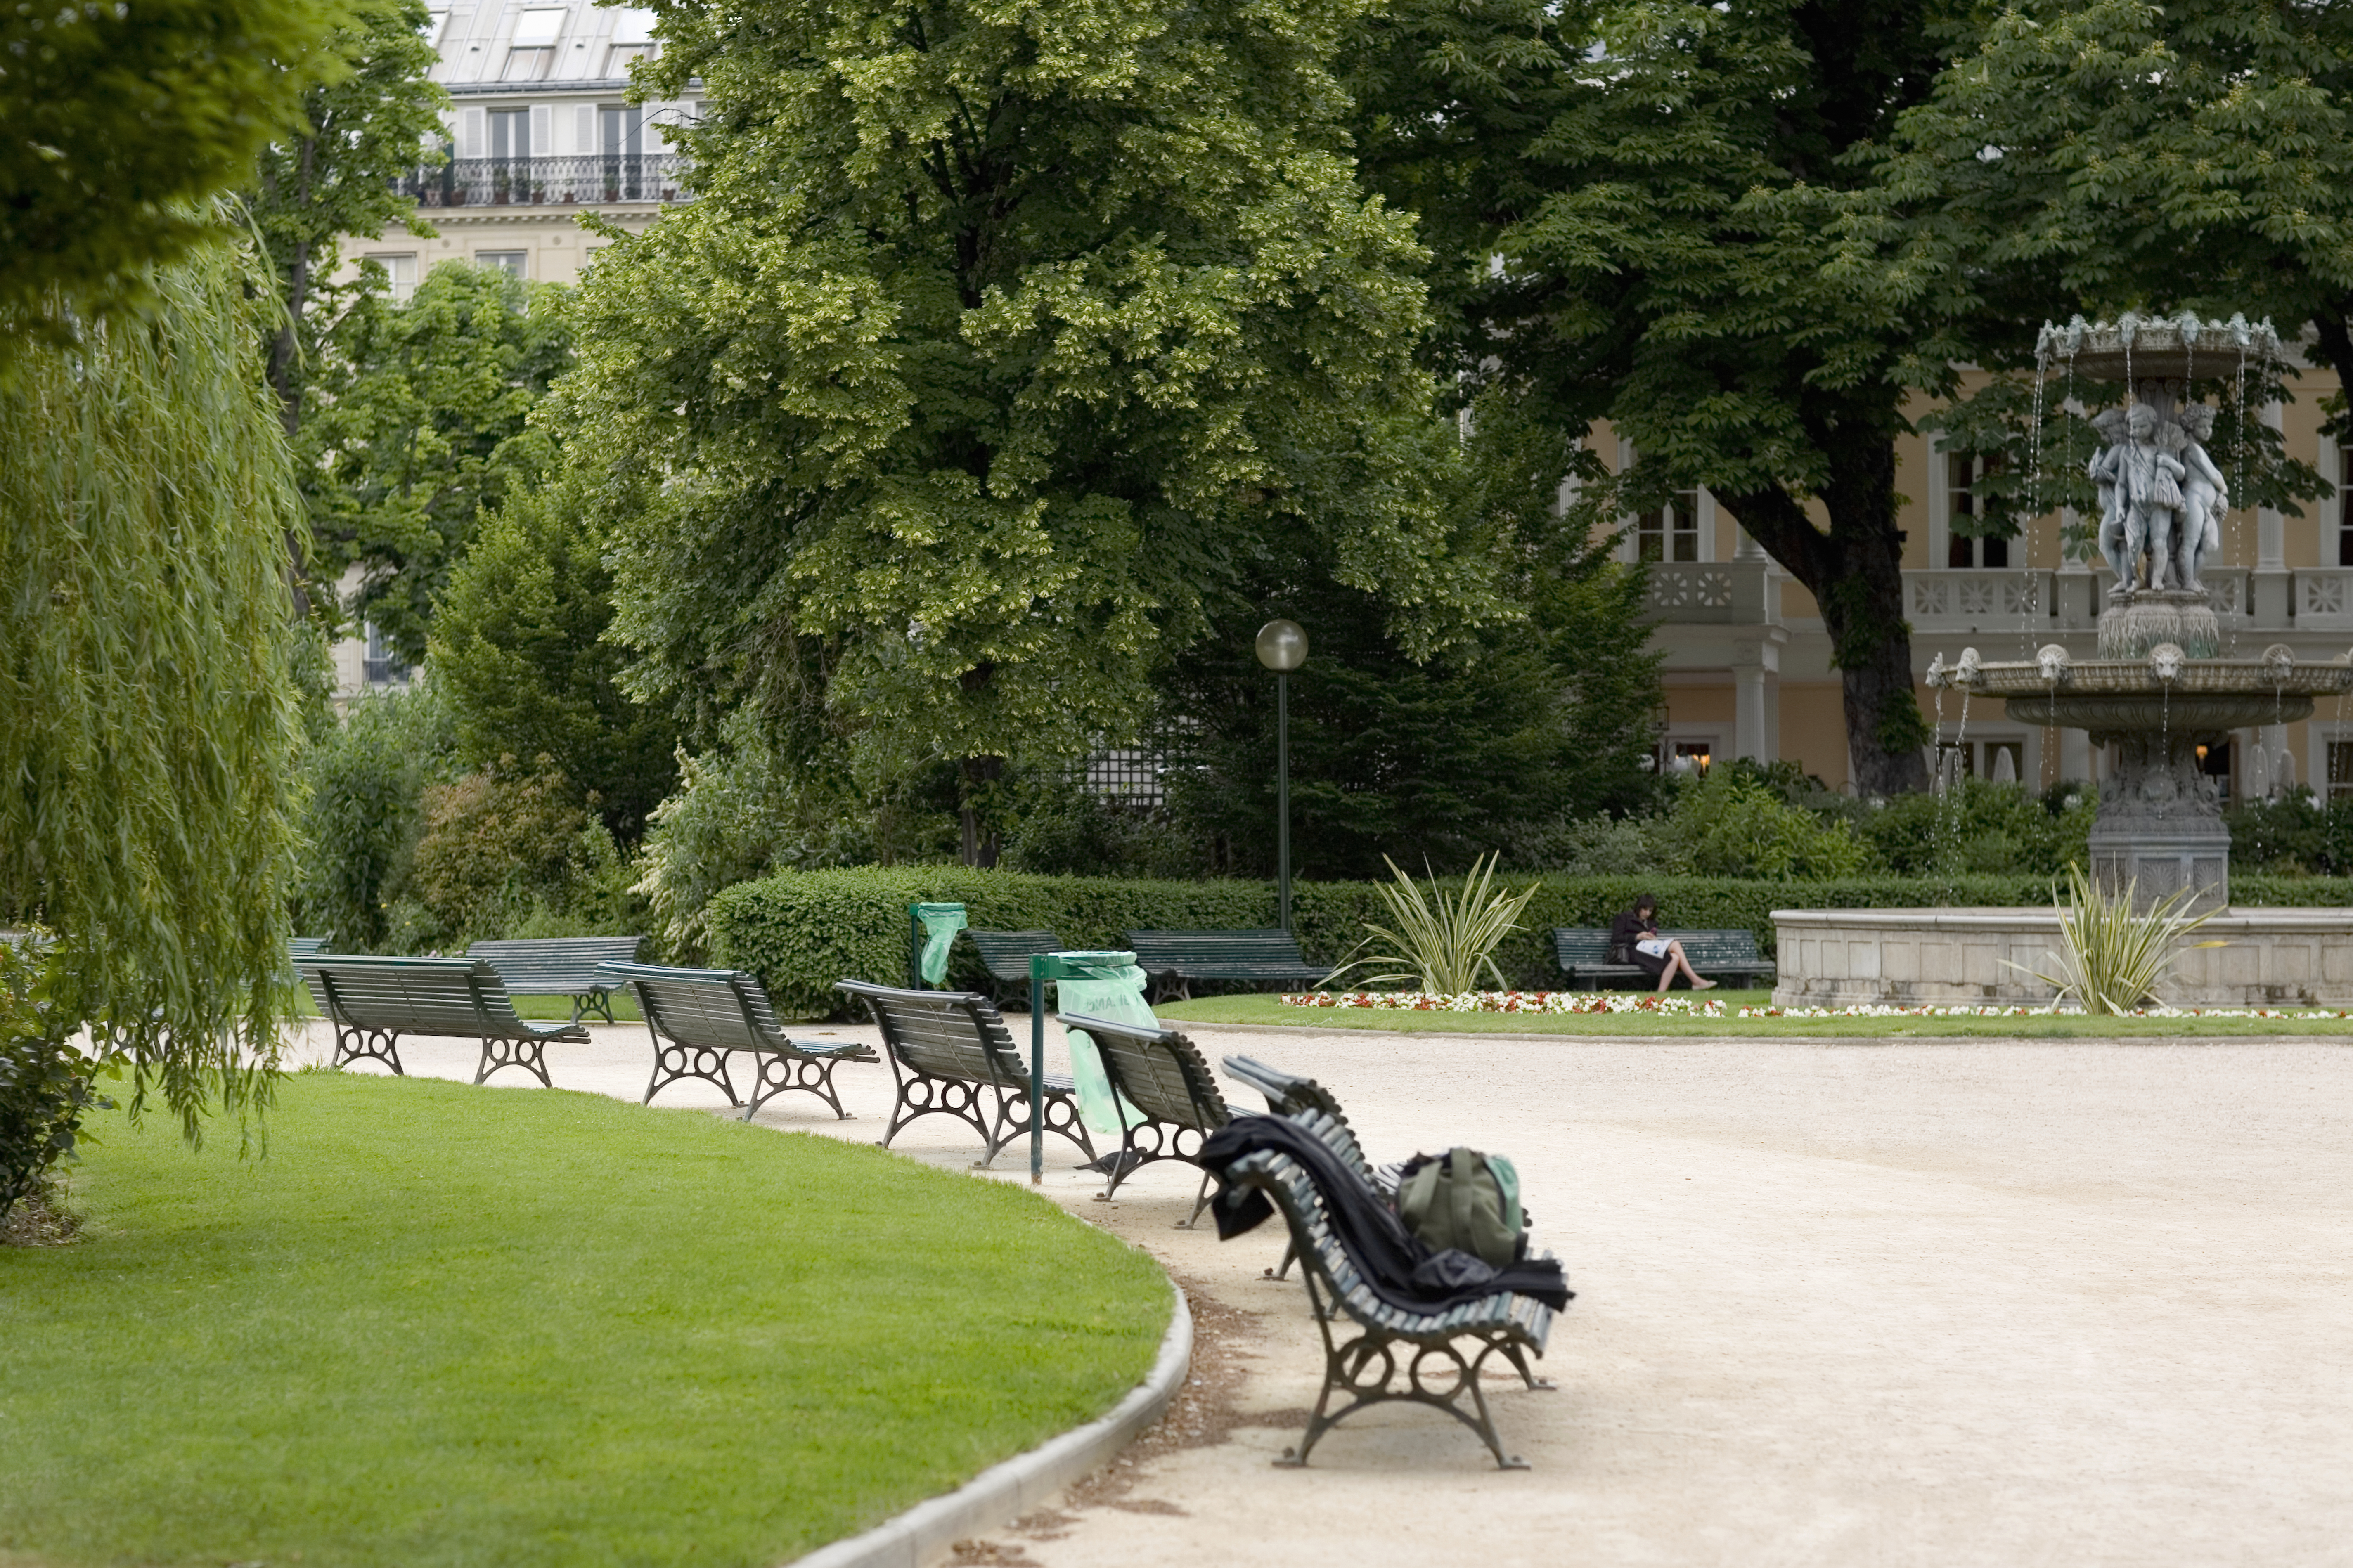 A path in a Parisian park is lined with a series of old green benches, surrounded by lawns and trees. There is a fountain to the right side.